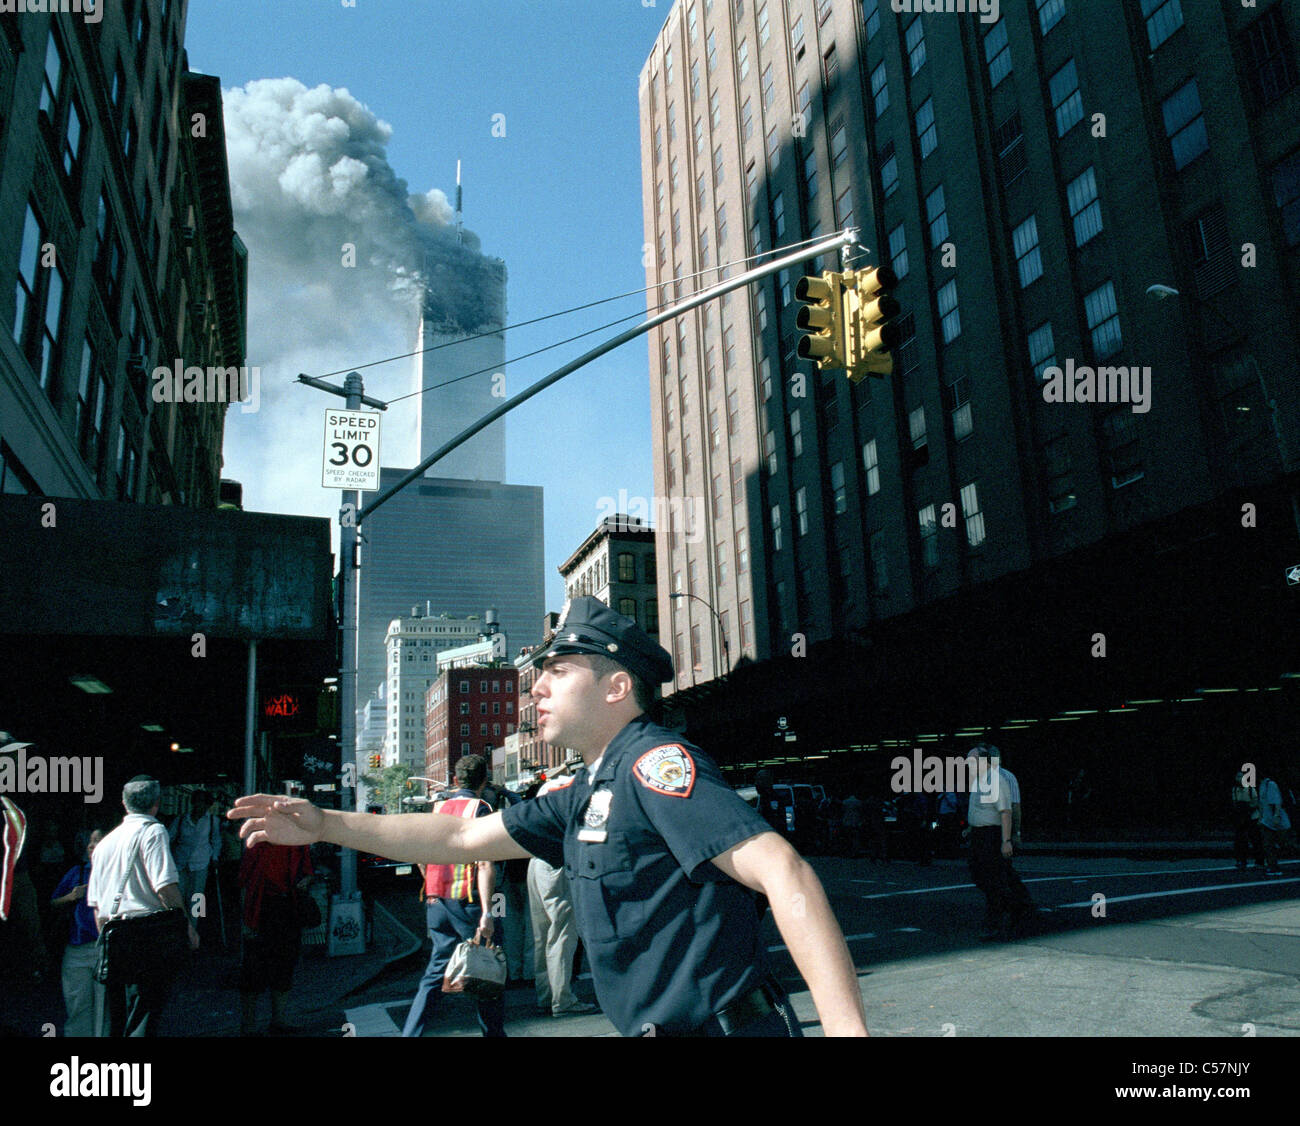 World Trade Center fire/ terrorism September 11, 2001. Police officer directs traffic. (© Frances M. Roberts) - Stock Image